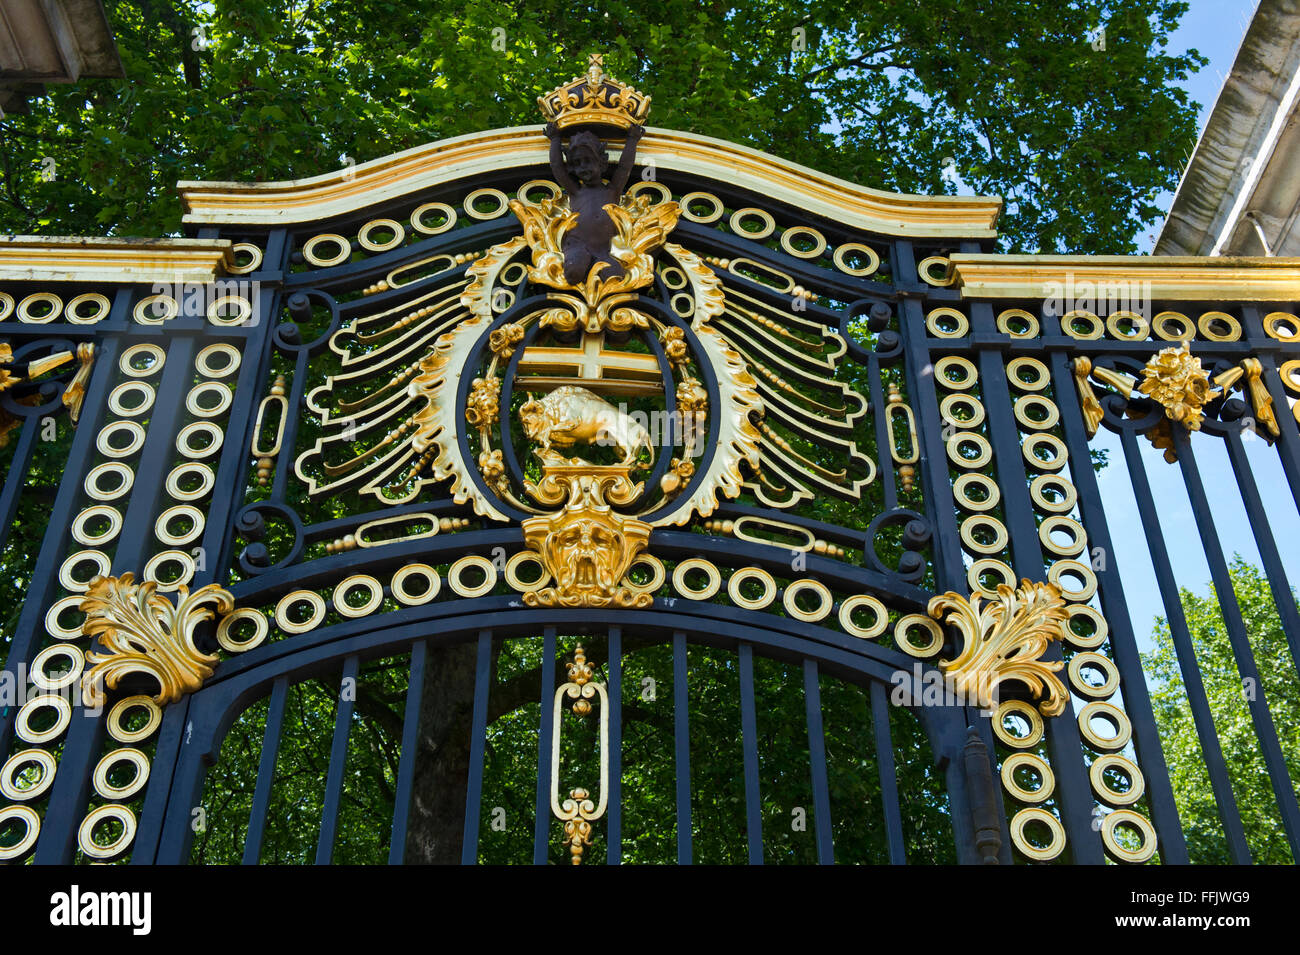 The Canada gate ornate with golden decorations near Buckingham Palace, London, United Kingdom. - Stock Image